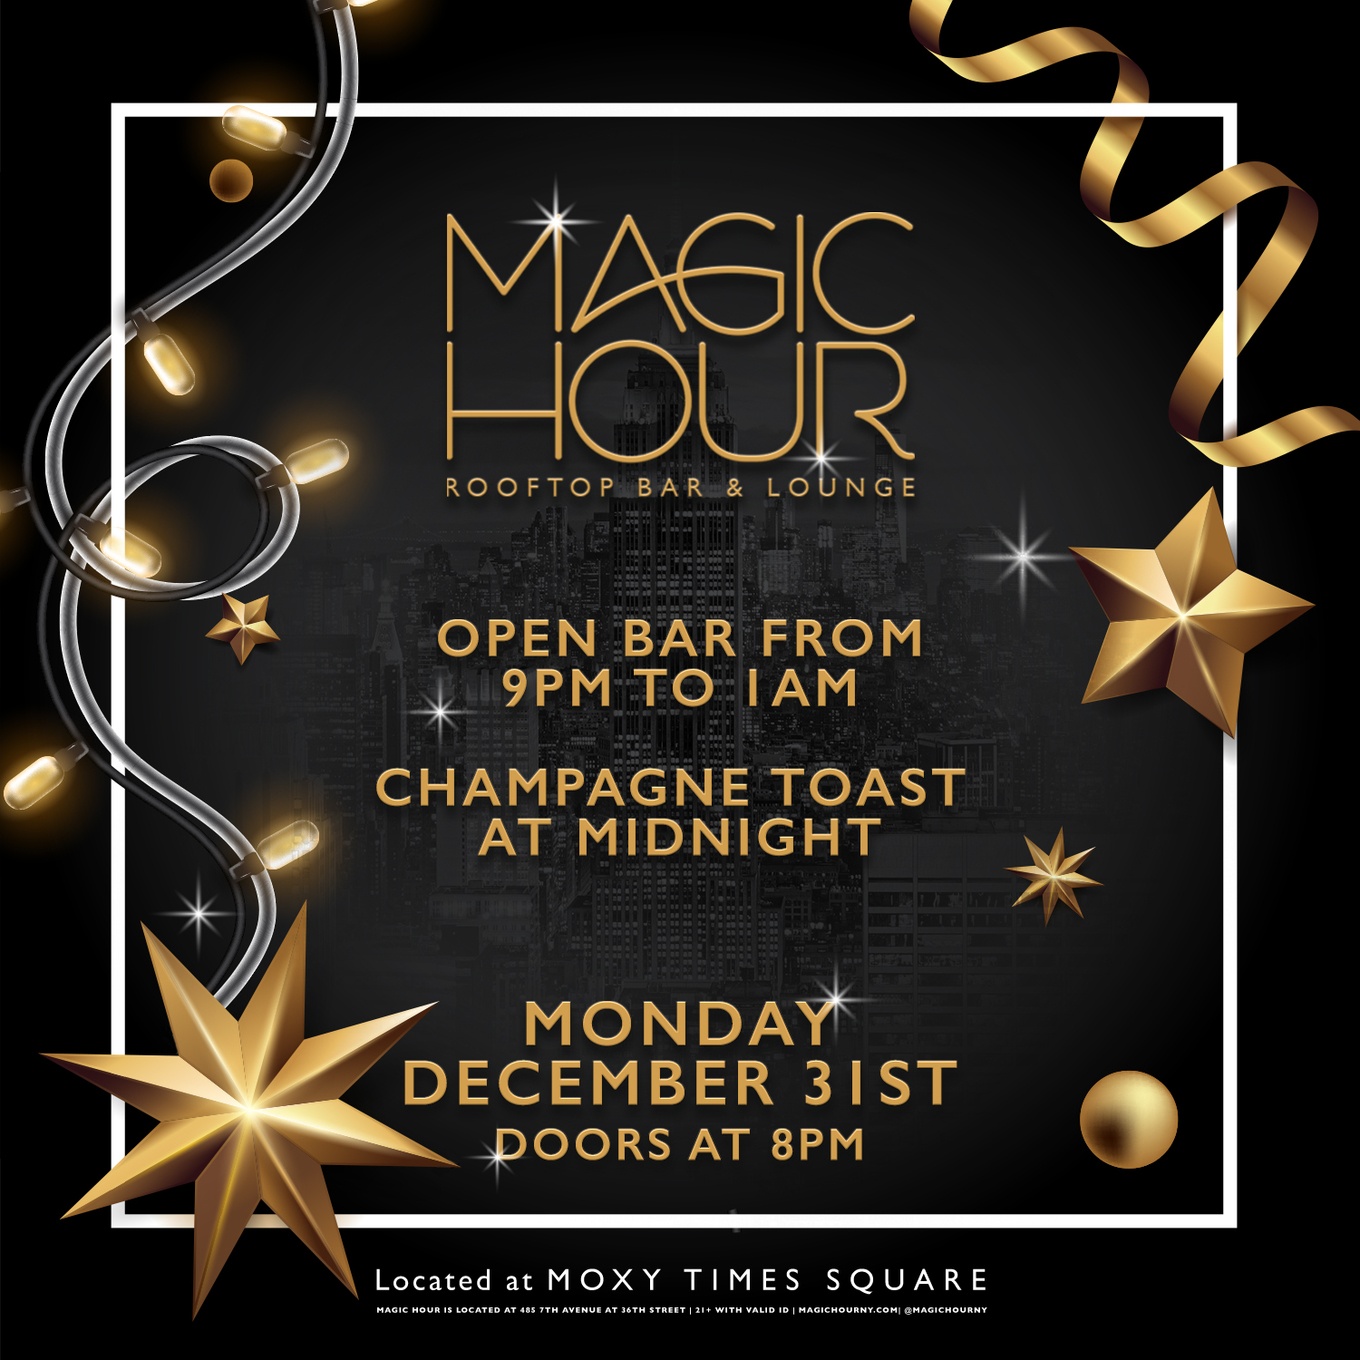 New Years Eve 2019 At Magic Hour